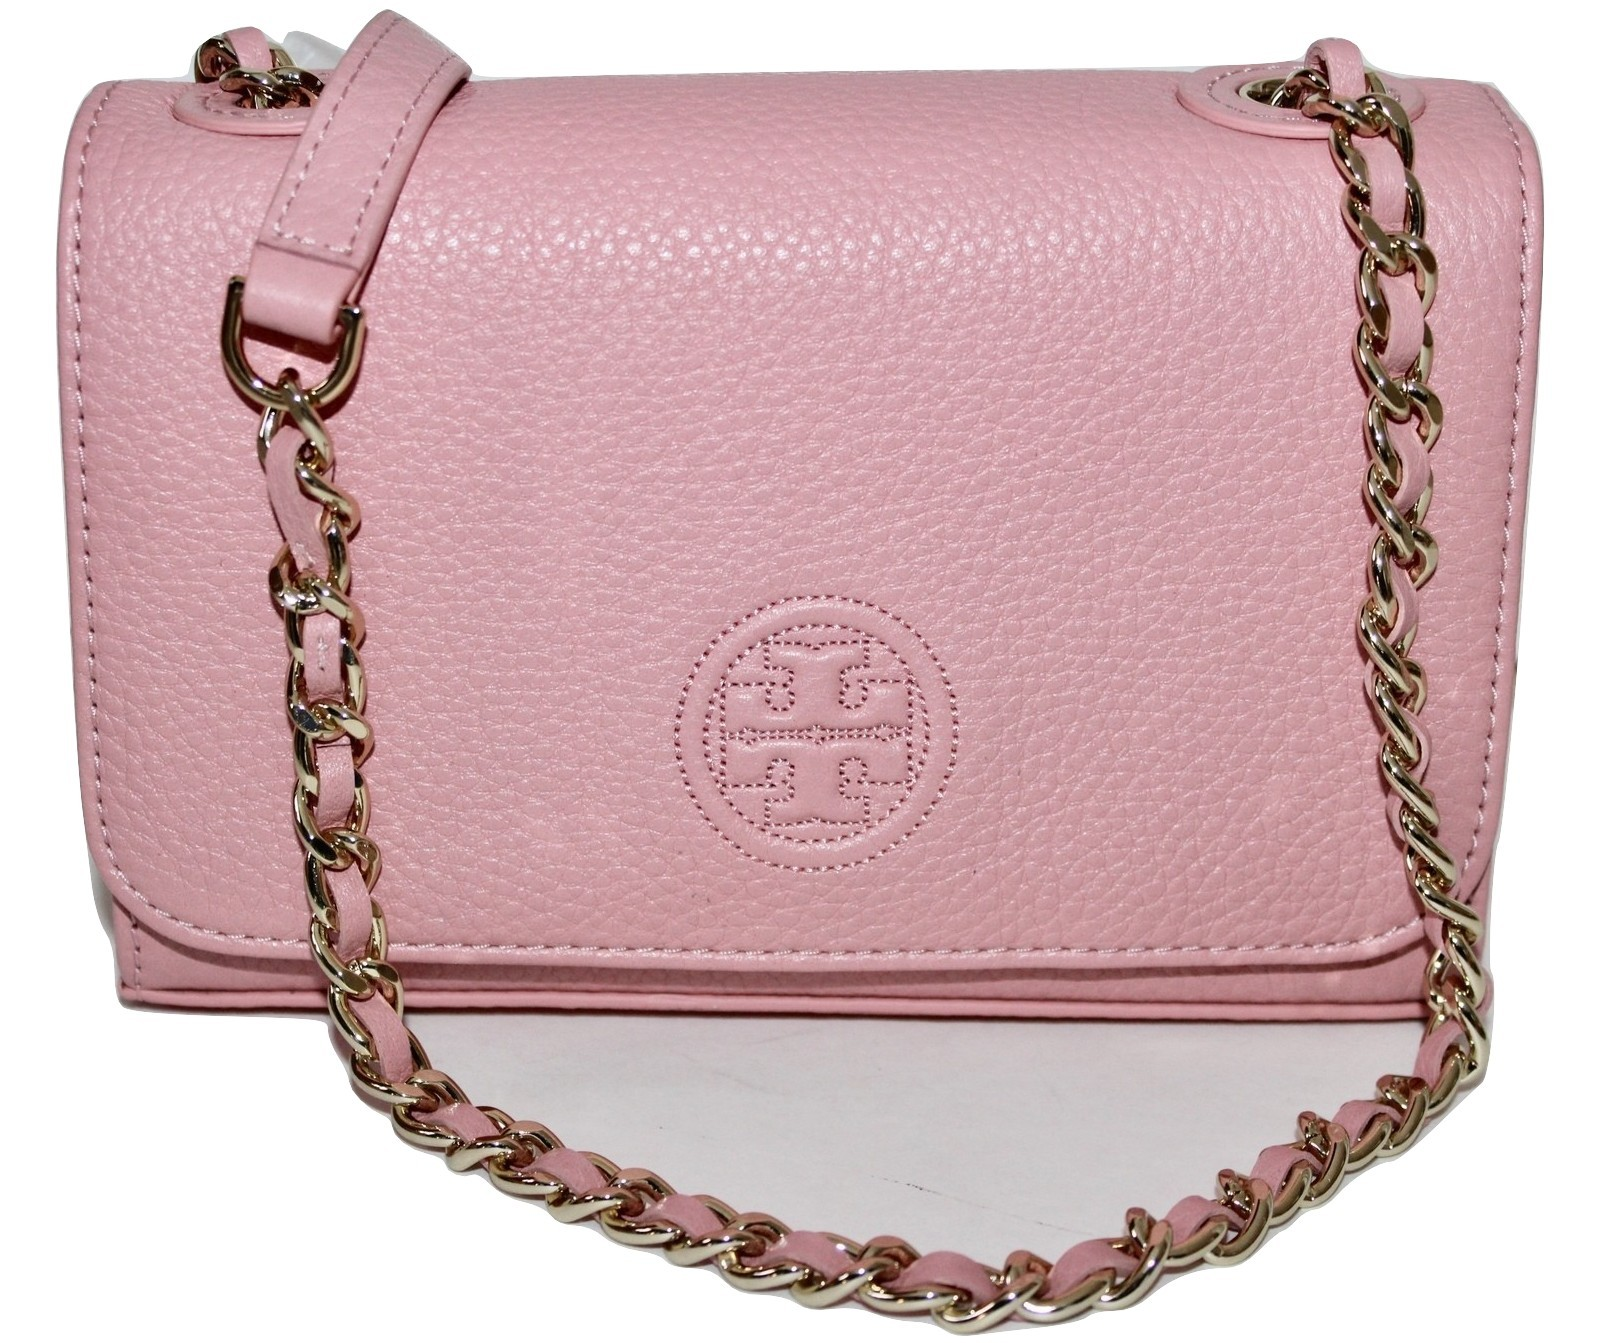 Img 6920756657 1541515321. Img 6920756657 1541515321. Previous. New Tory  Burch Bombe Shrunken Dark Cameo Pink Leather 50fedb905ce7a